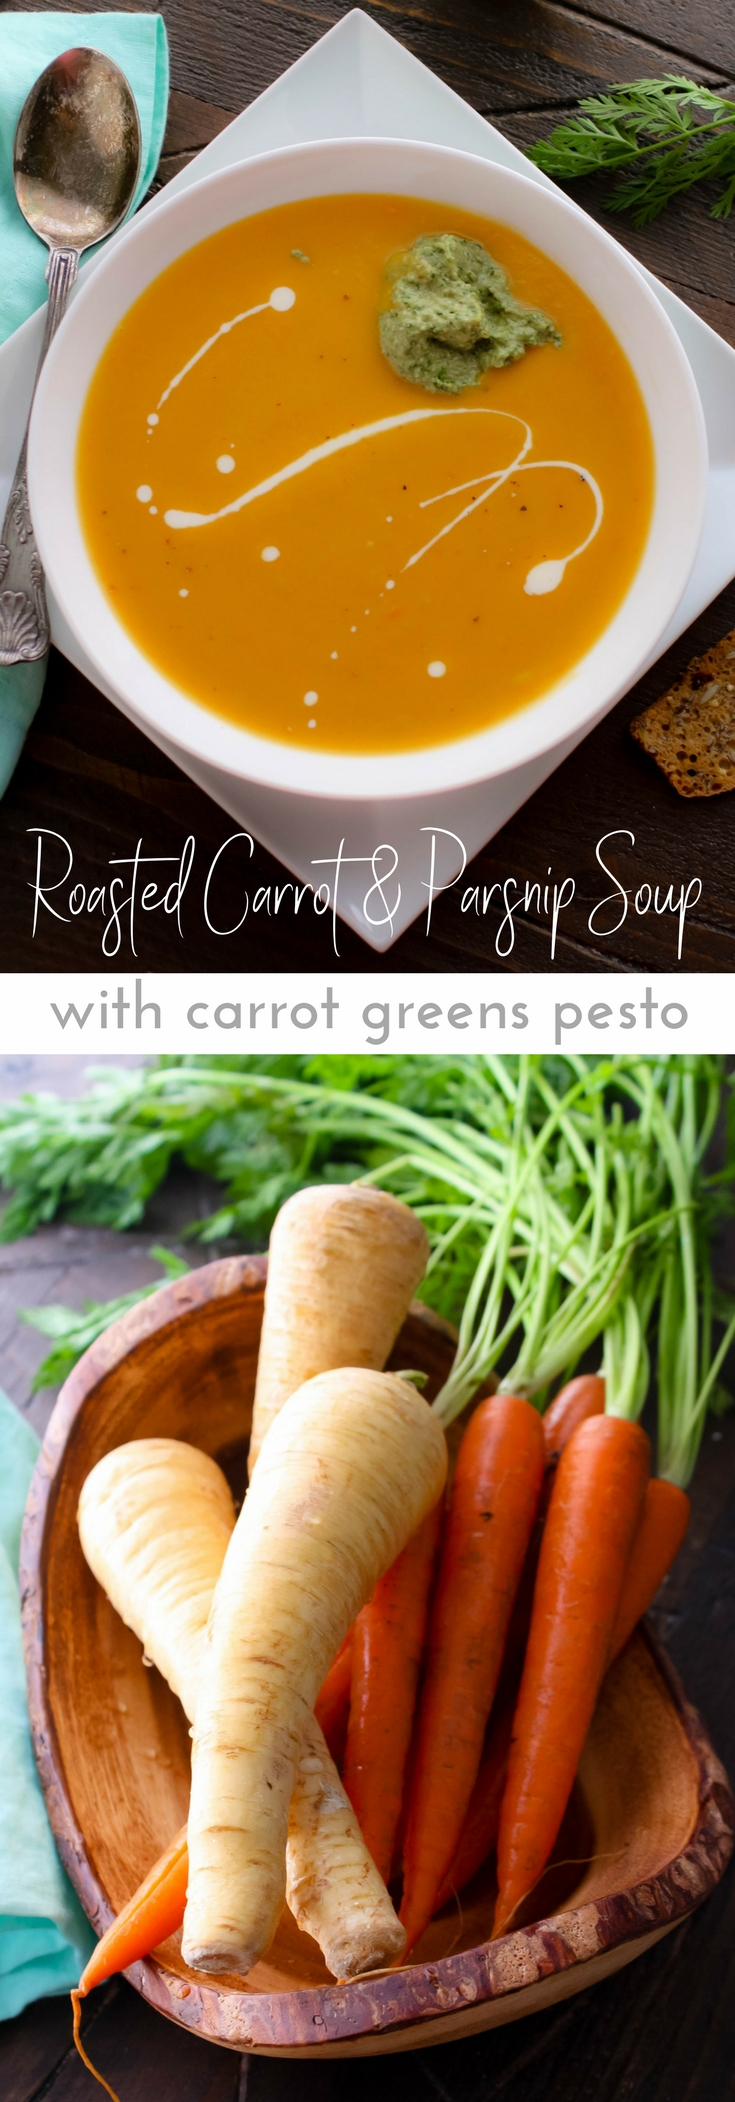 Roasted Carrot and Parsnip Soup with Carrot Greens Pesto is a delightful dish for any night of the week, including Meatless Mondays! Whip up a batch of Roasted Carrot and Parsnip Soup with Carrot Greens Pesto soon!